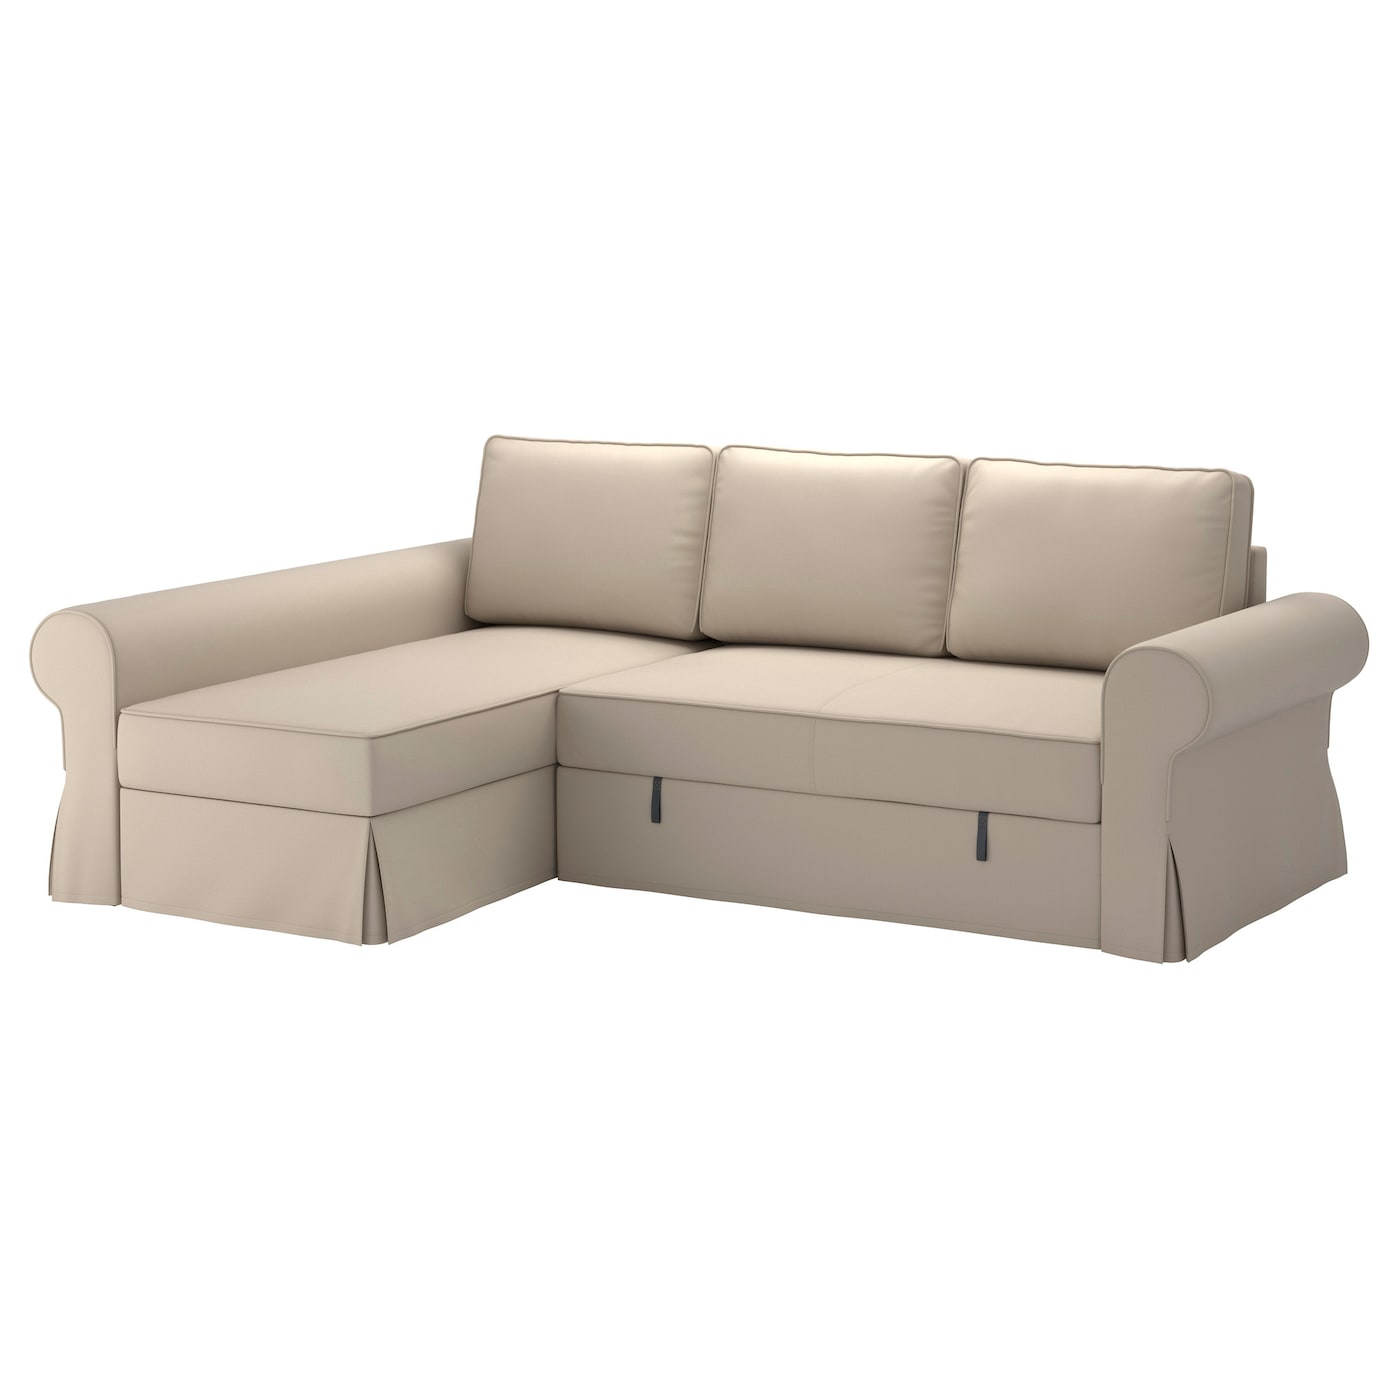 Backabro cover sofa bed with chaise longue ramna beige ikea - Chaise longue jardin ikea ...